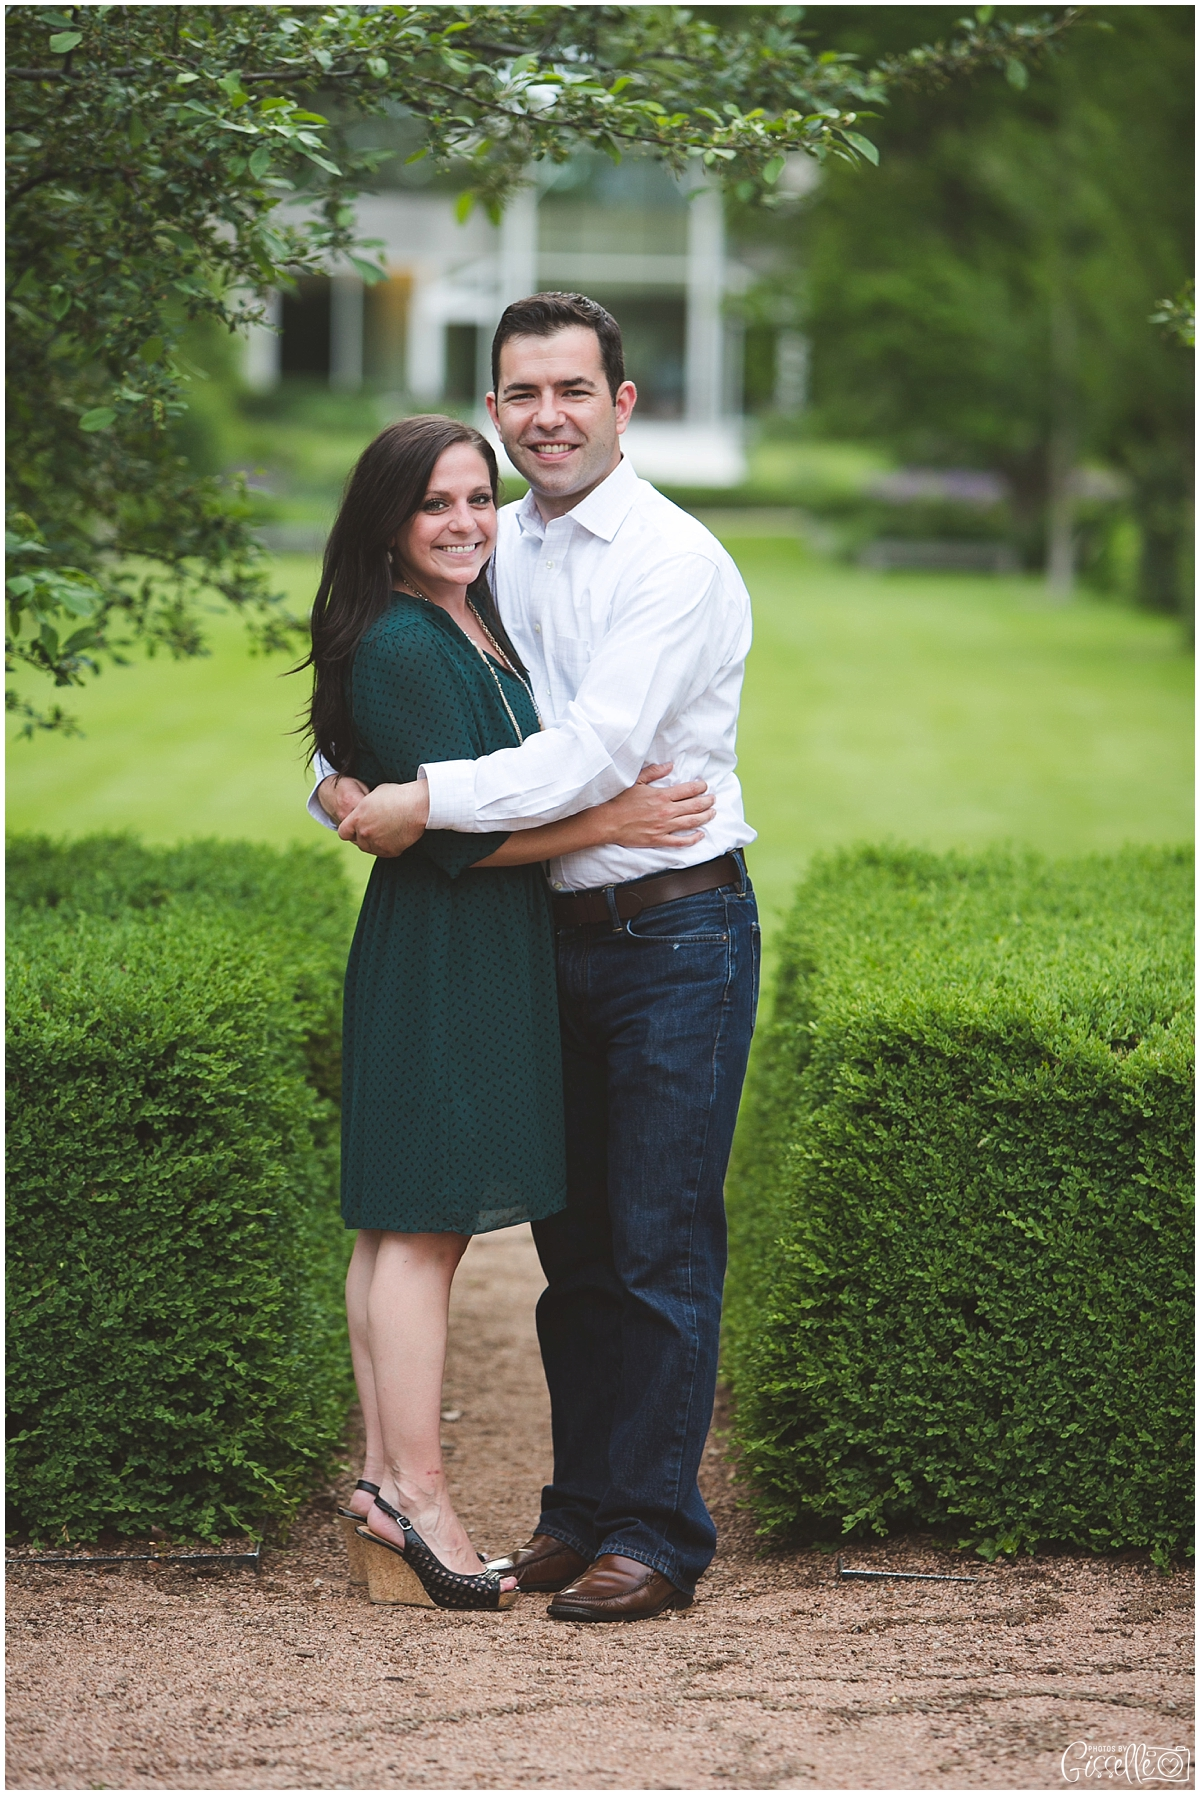 Morton-Arobretum-Engagement-Session-Photos-by-Gisselle007.jpg